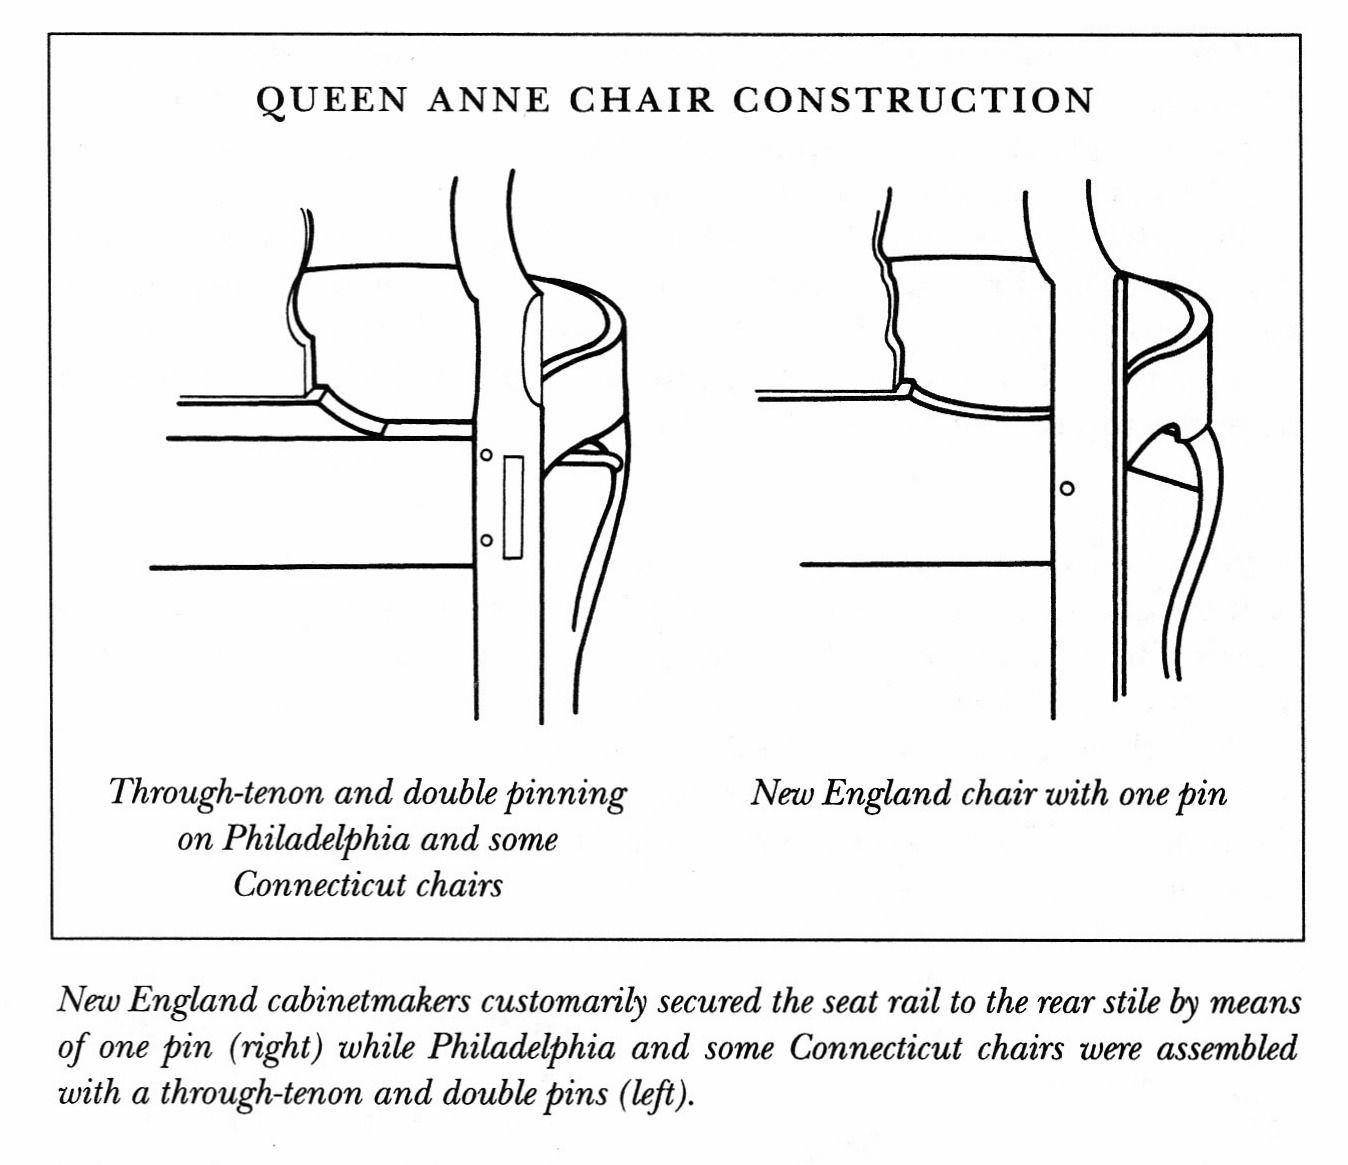 Chair antique queen anne chair the buzz on antiques antique chairs 101 - Diagram Of Queen Anne Chair Construction Queen Anne Chairfurniture Styles Vintage